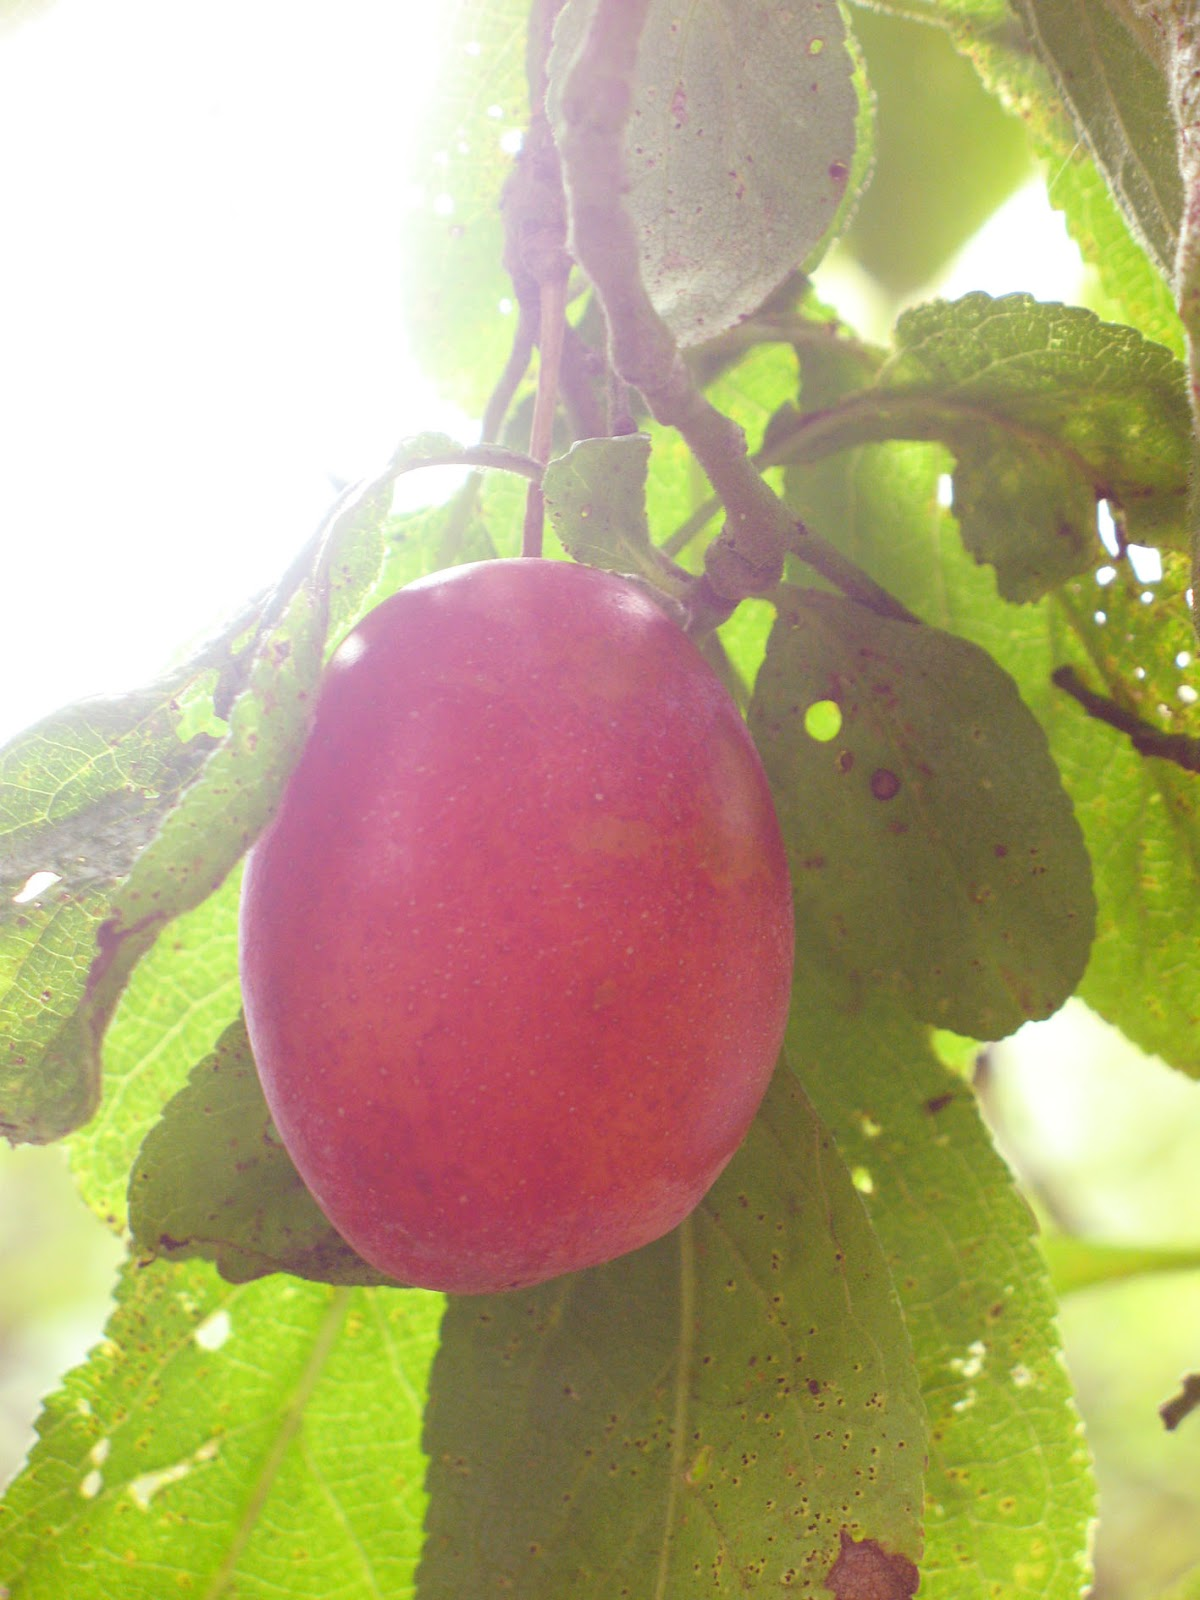 Inspiration for weddings, invitations and stationery: plum jam ...